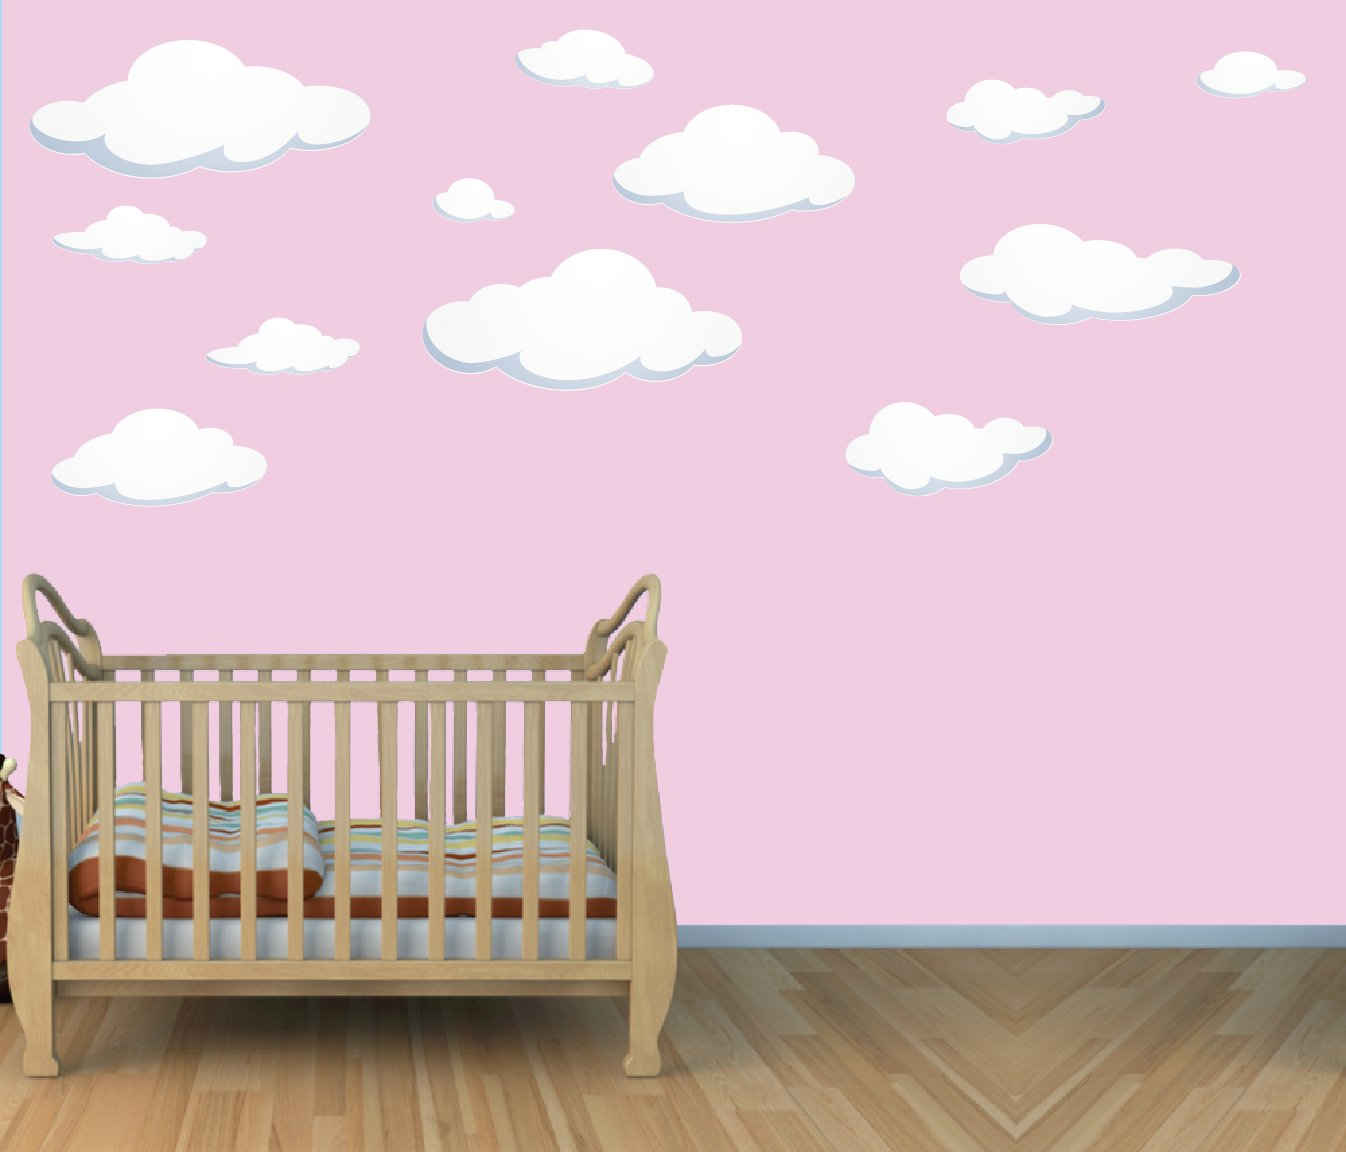 Amazon.com : Large Cloud Wall Decals, Cloud Wall Stickers for ...